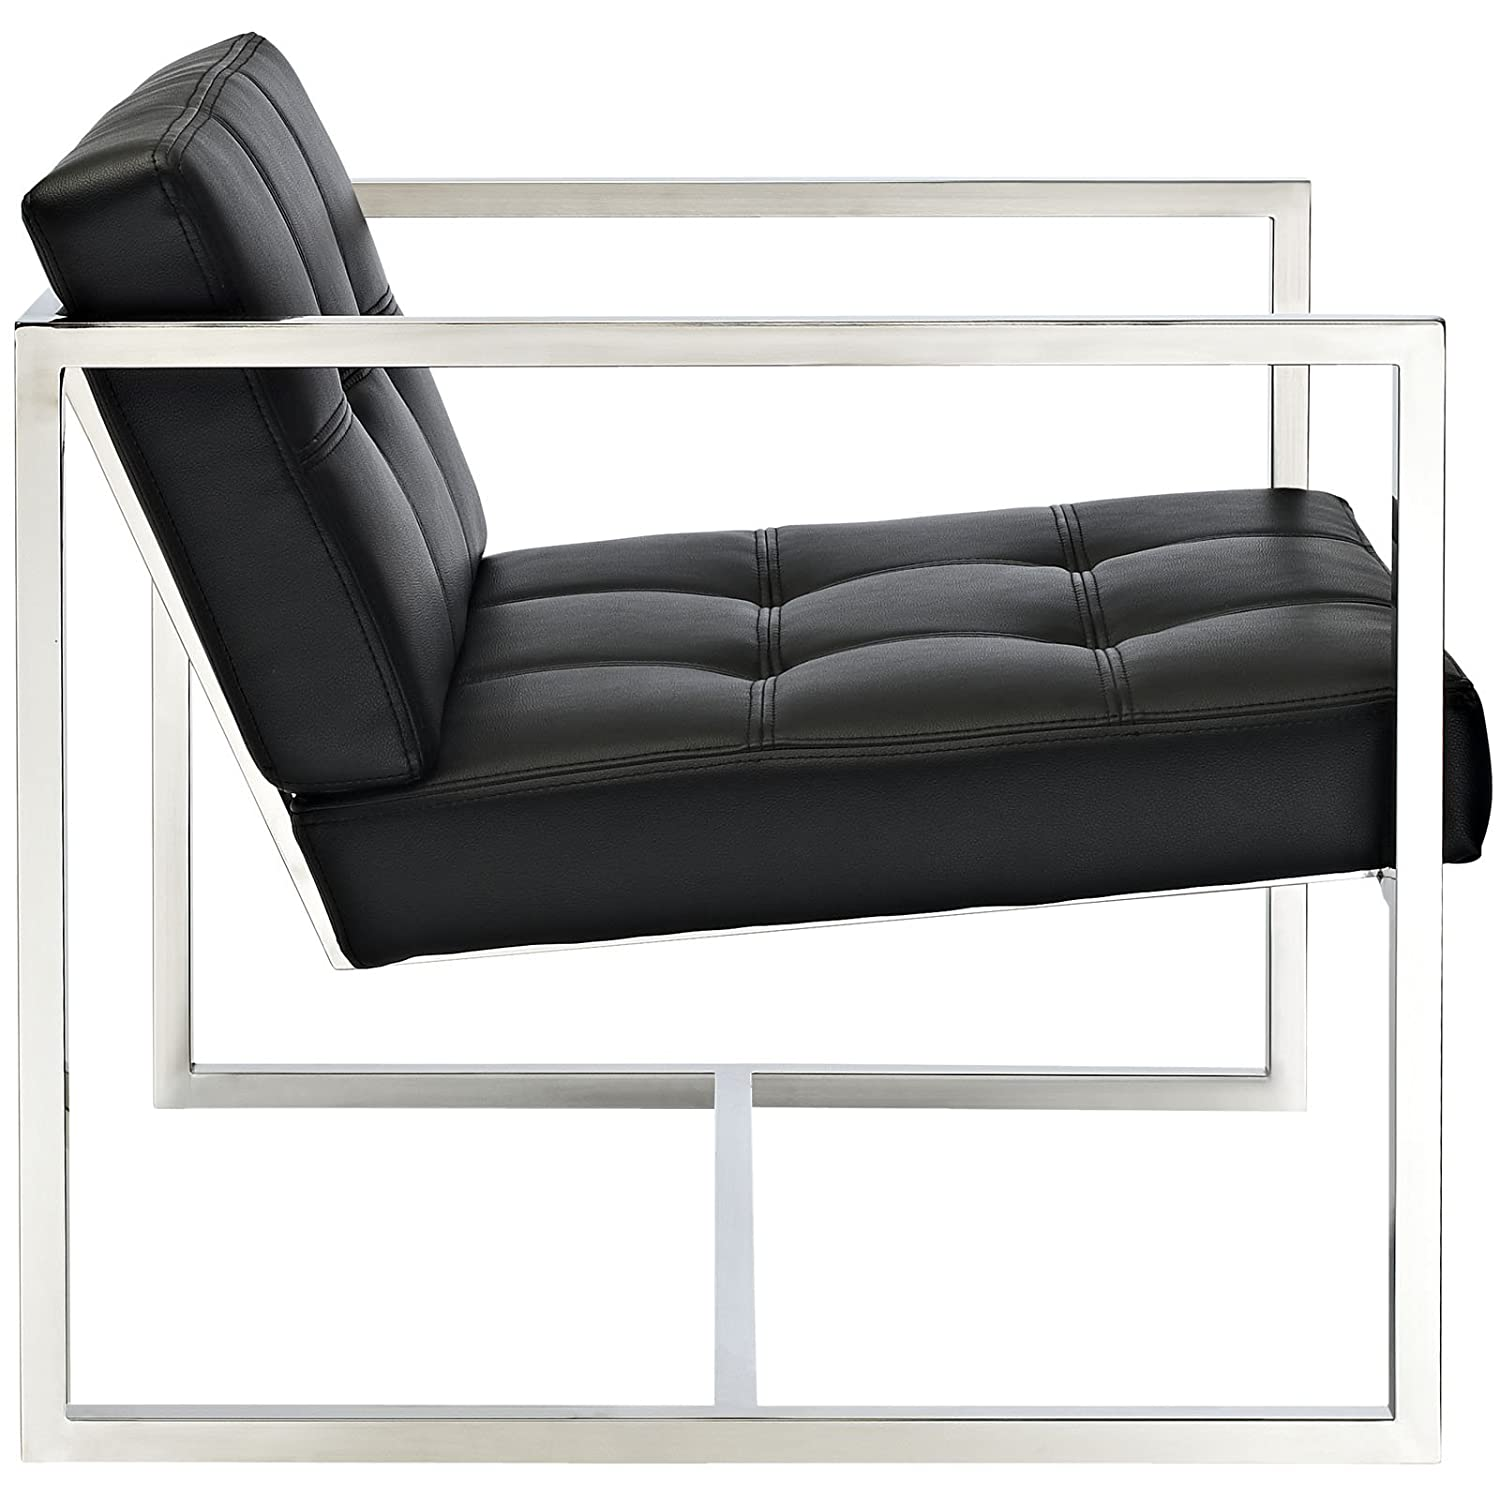 amazoncom modway hover modern reception chair black kitchen  - amazoncom modway hover modern reception chair black kitchen  dining